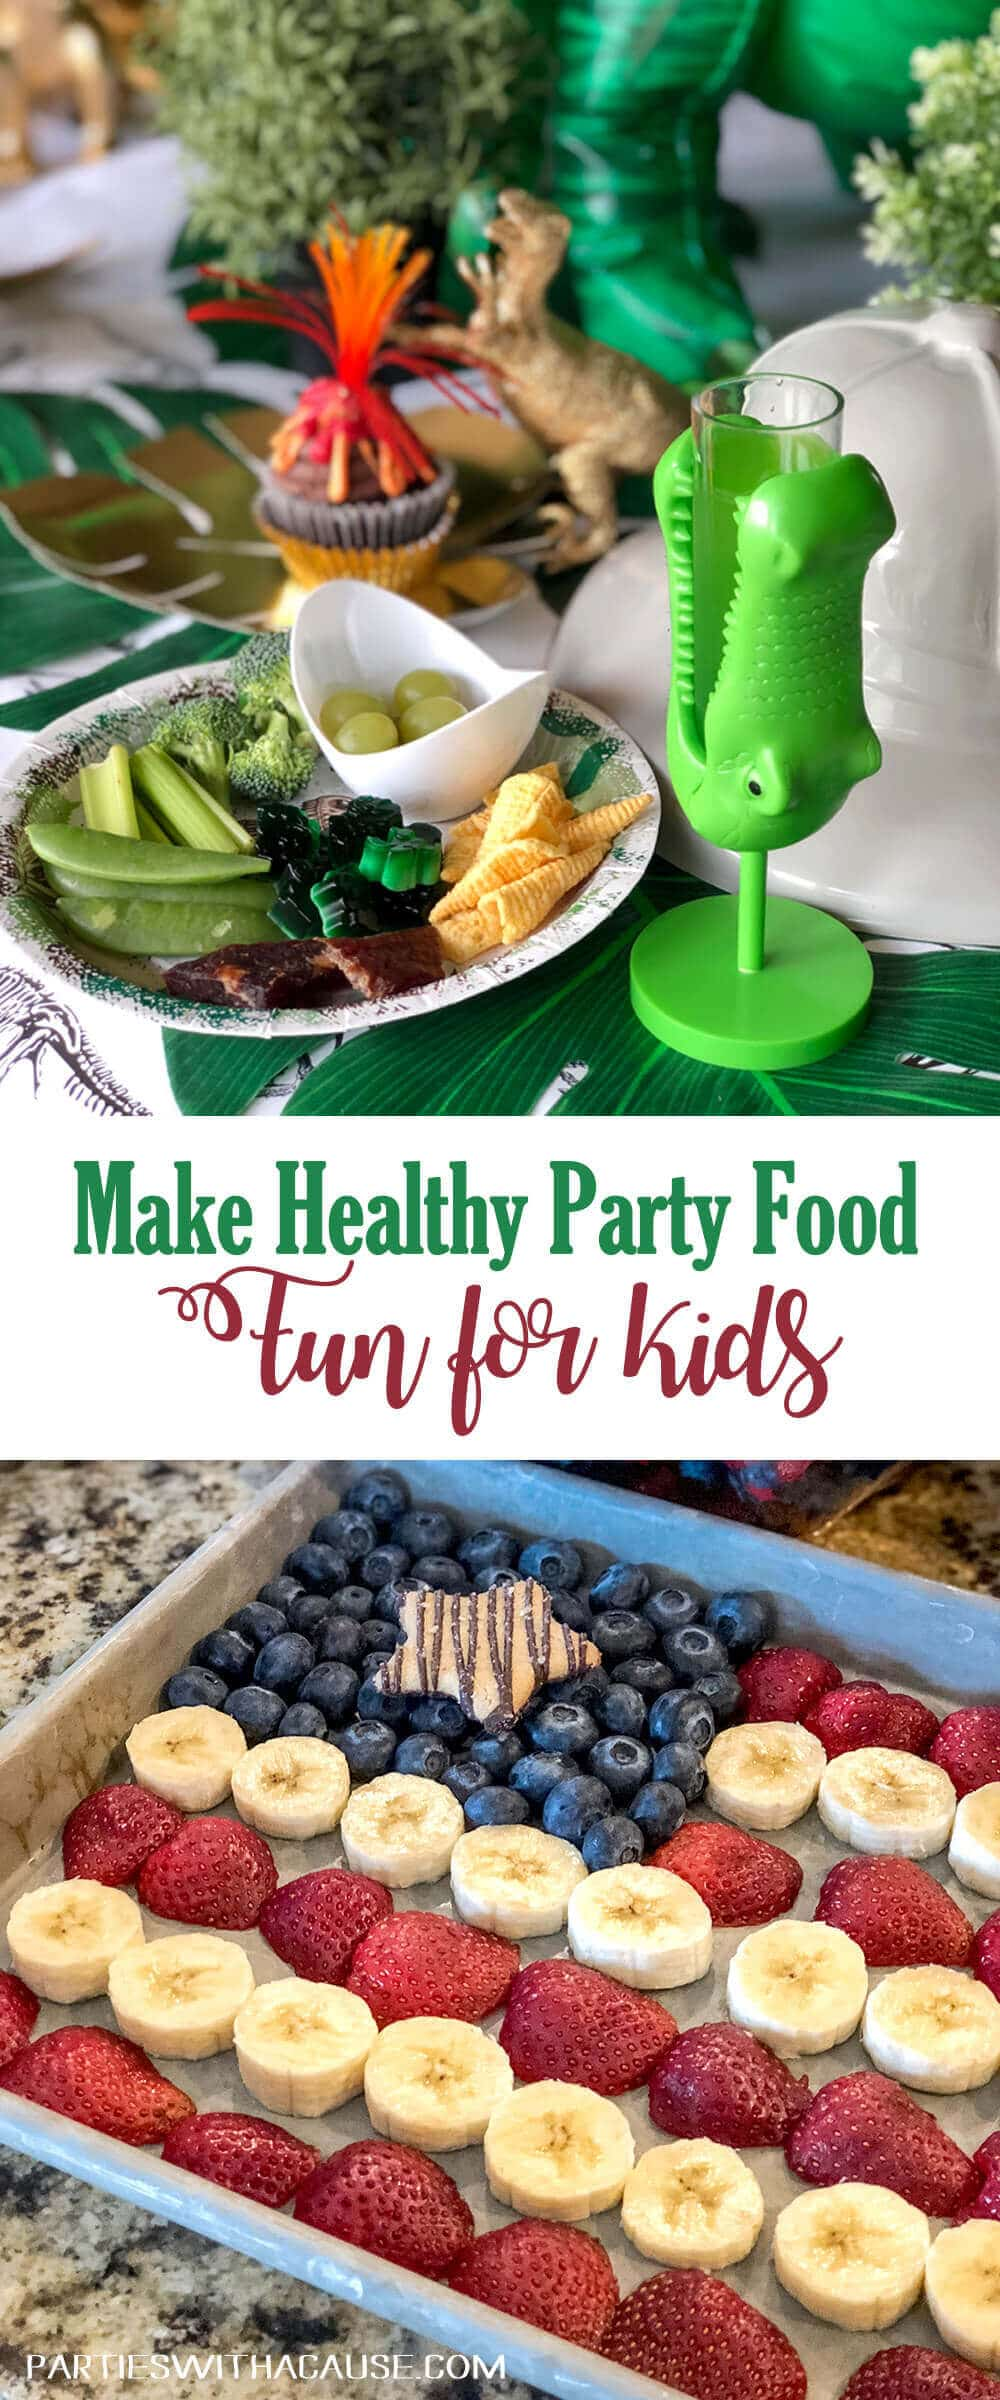 Make Healthy Party Foods fun for kids